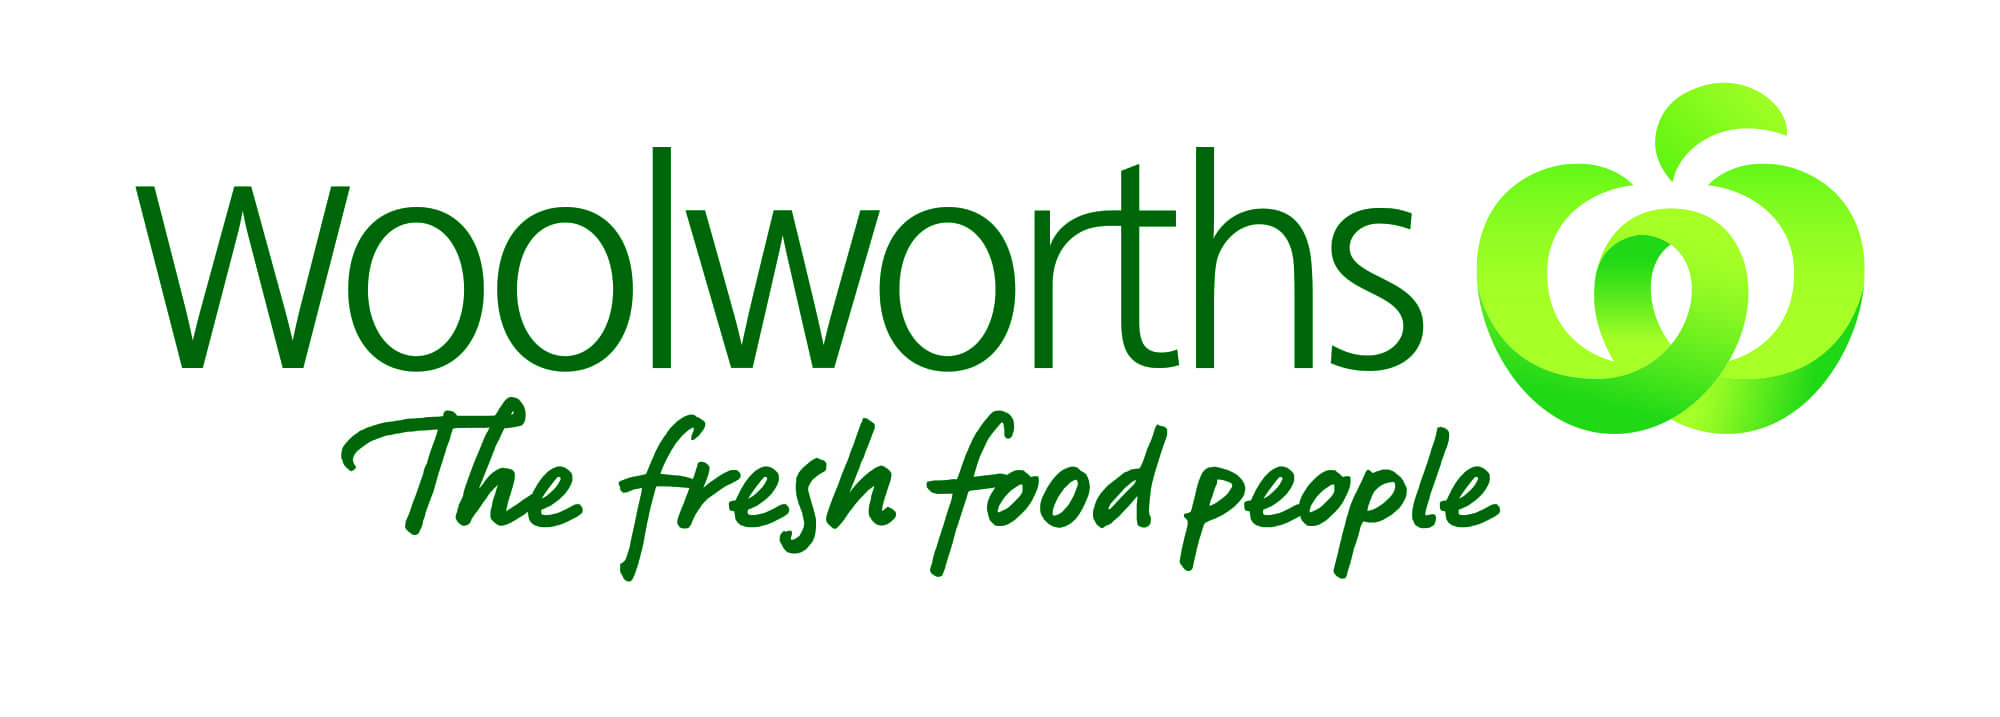 customer-channels-woolworths